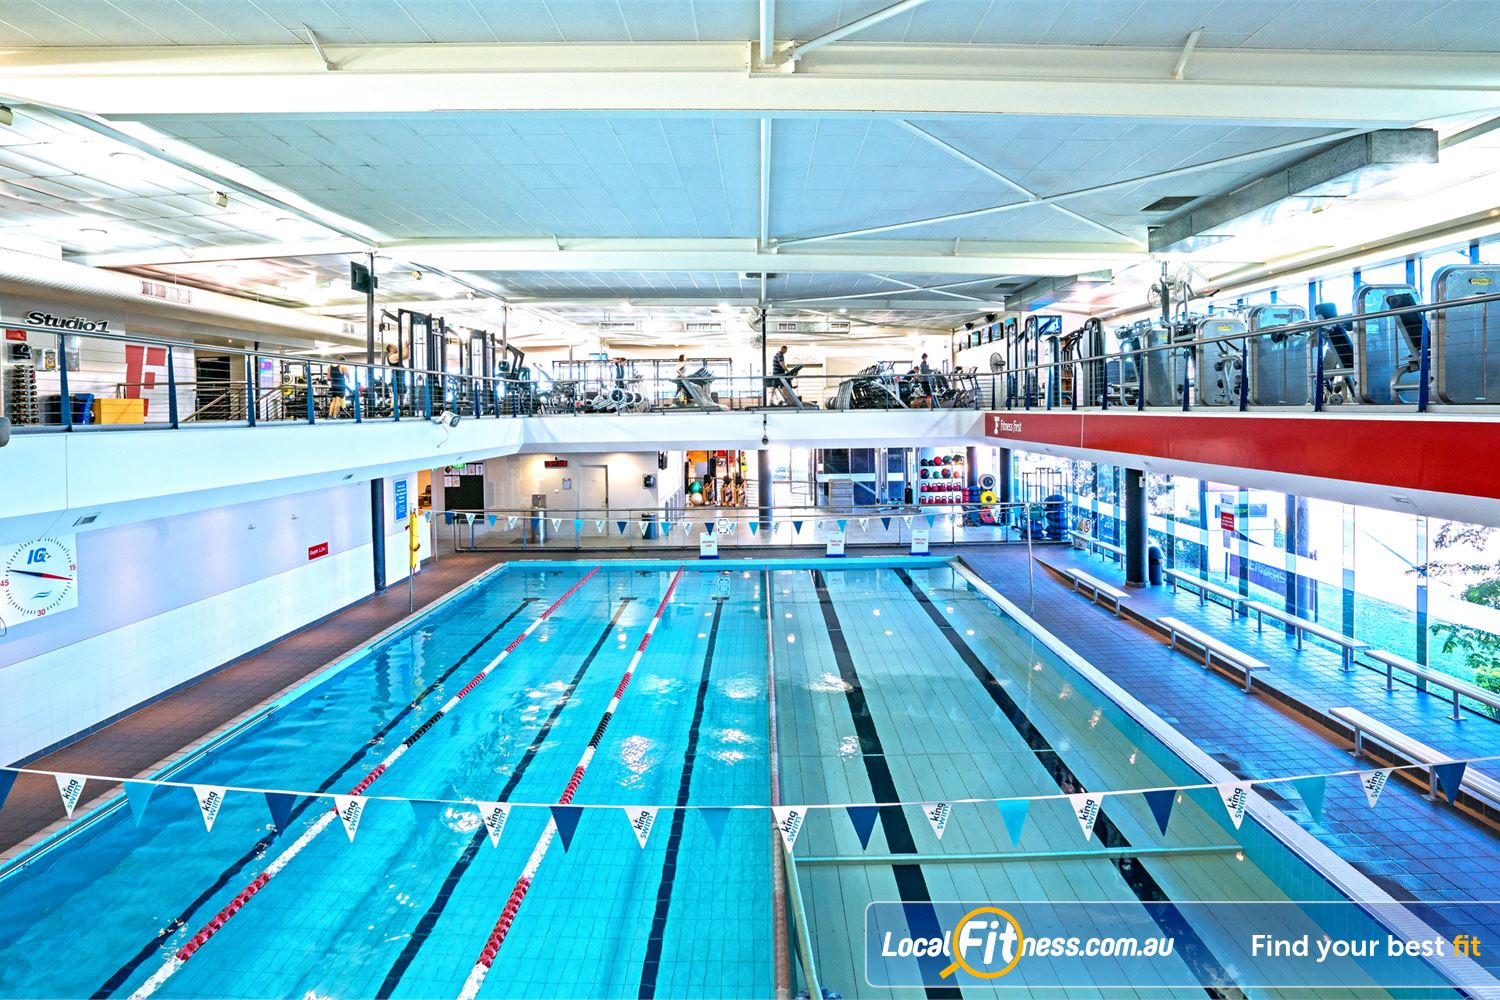 Fitness first lutwyche gym free 1 day trial free 1 day trial for Fitness first gyms with swimming pools